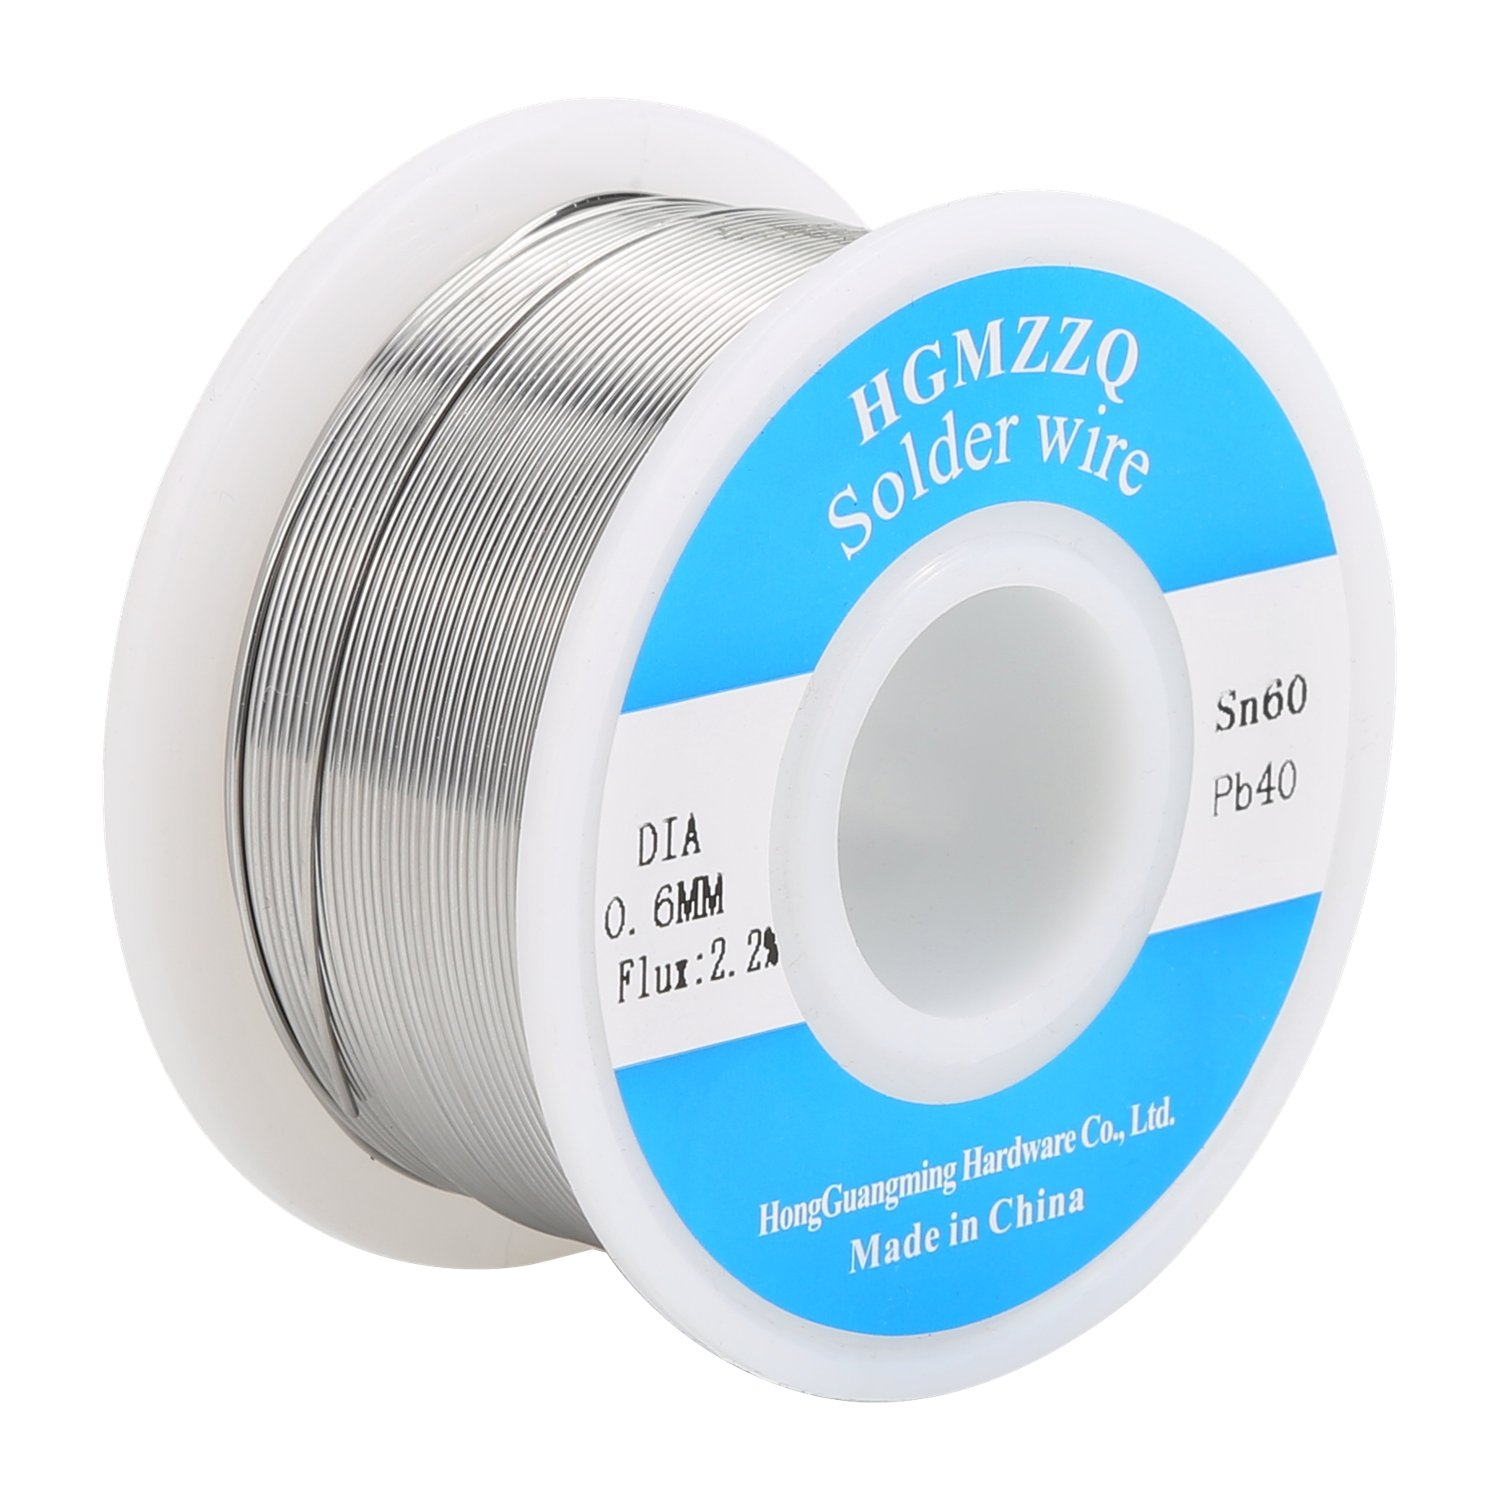 HGMZZQ 60/40 Tin Lead Solder Wire with Rosin for Electrical ...